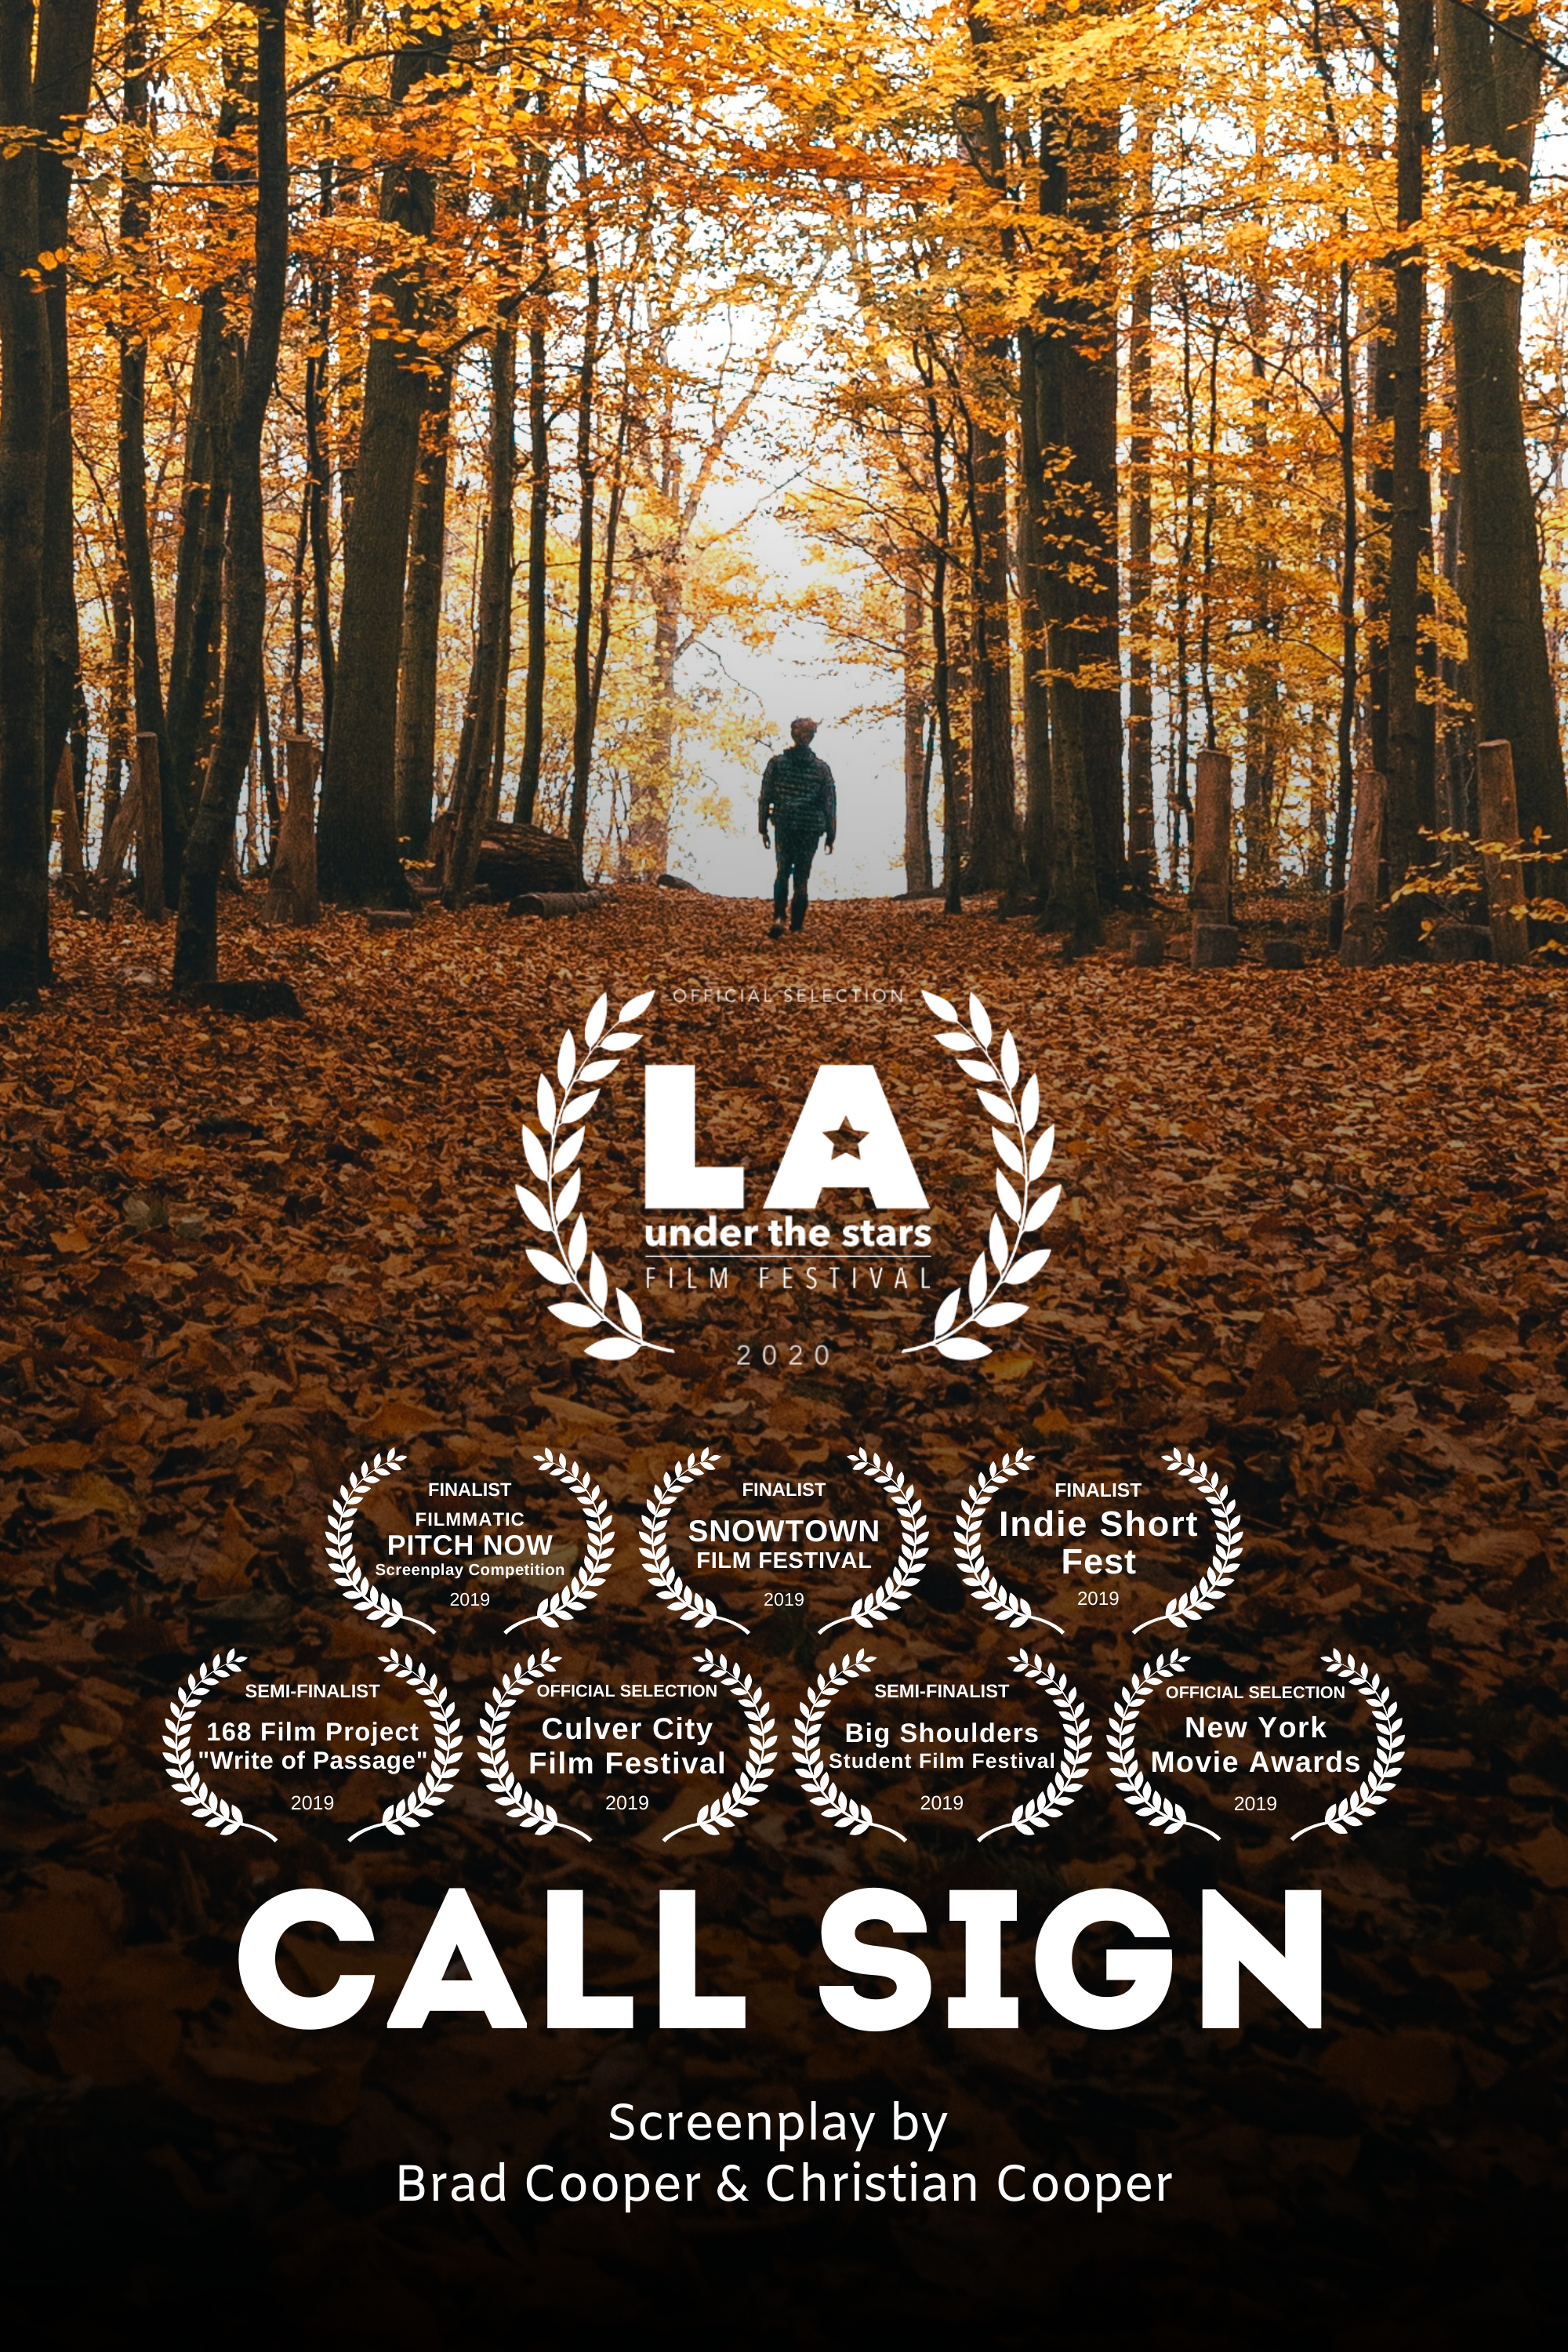 Call Sign Poster Tall - LAUTS v2